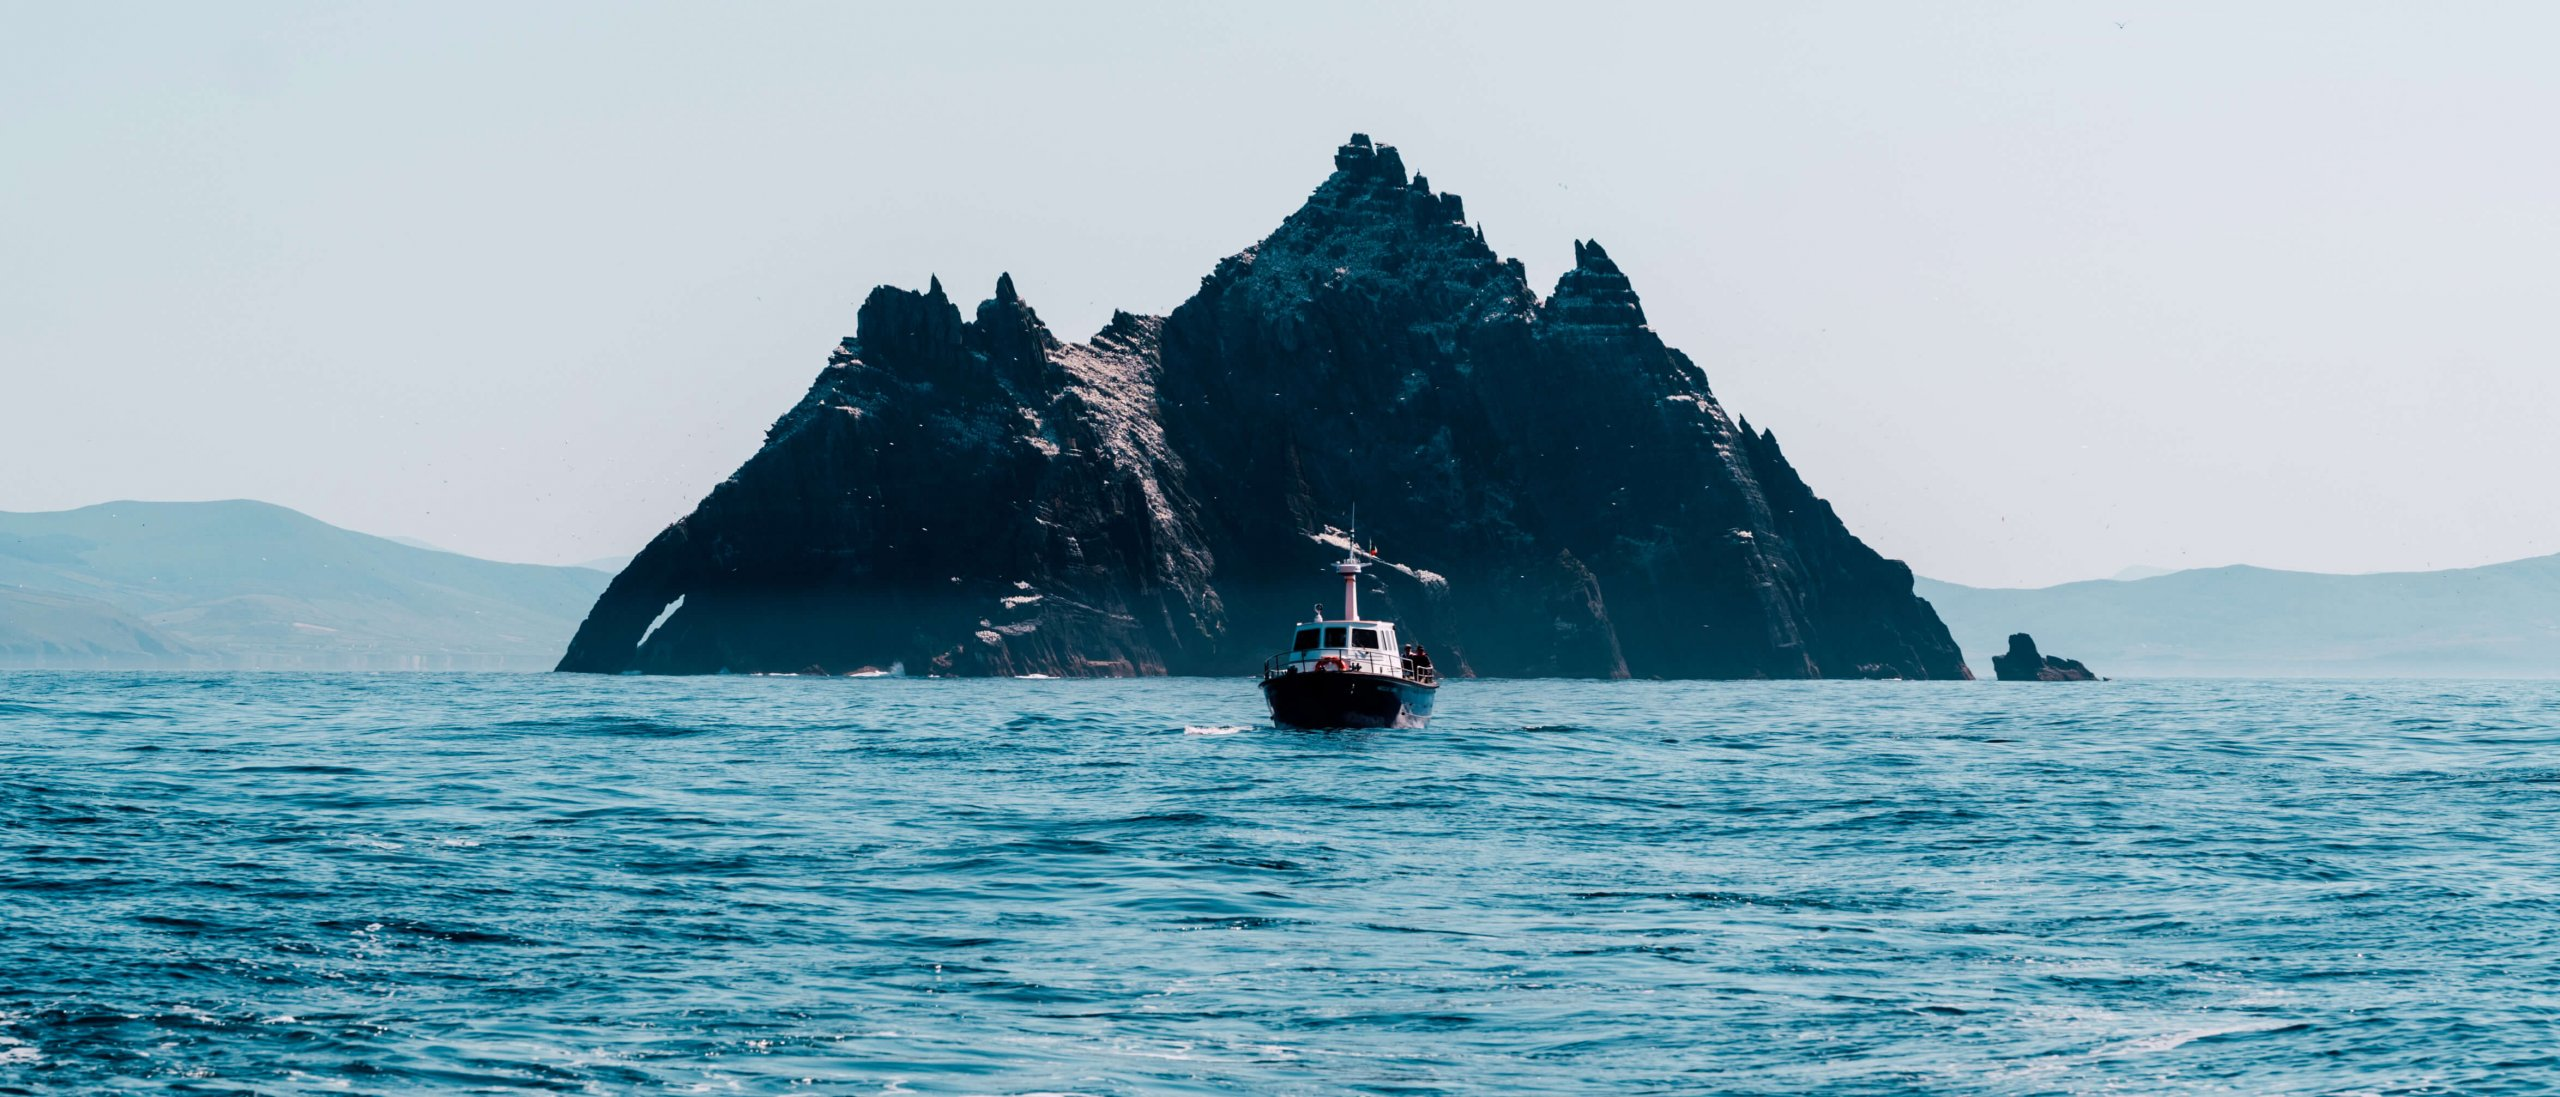 A boat in front of Little Skellig island off the coast of Ireland